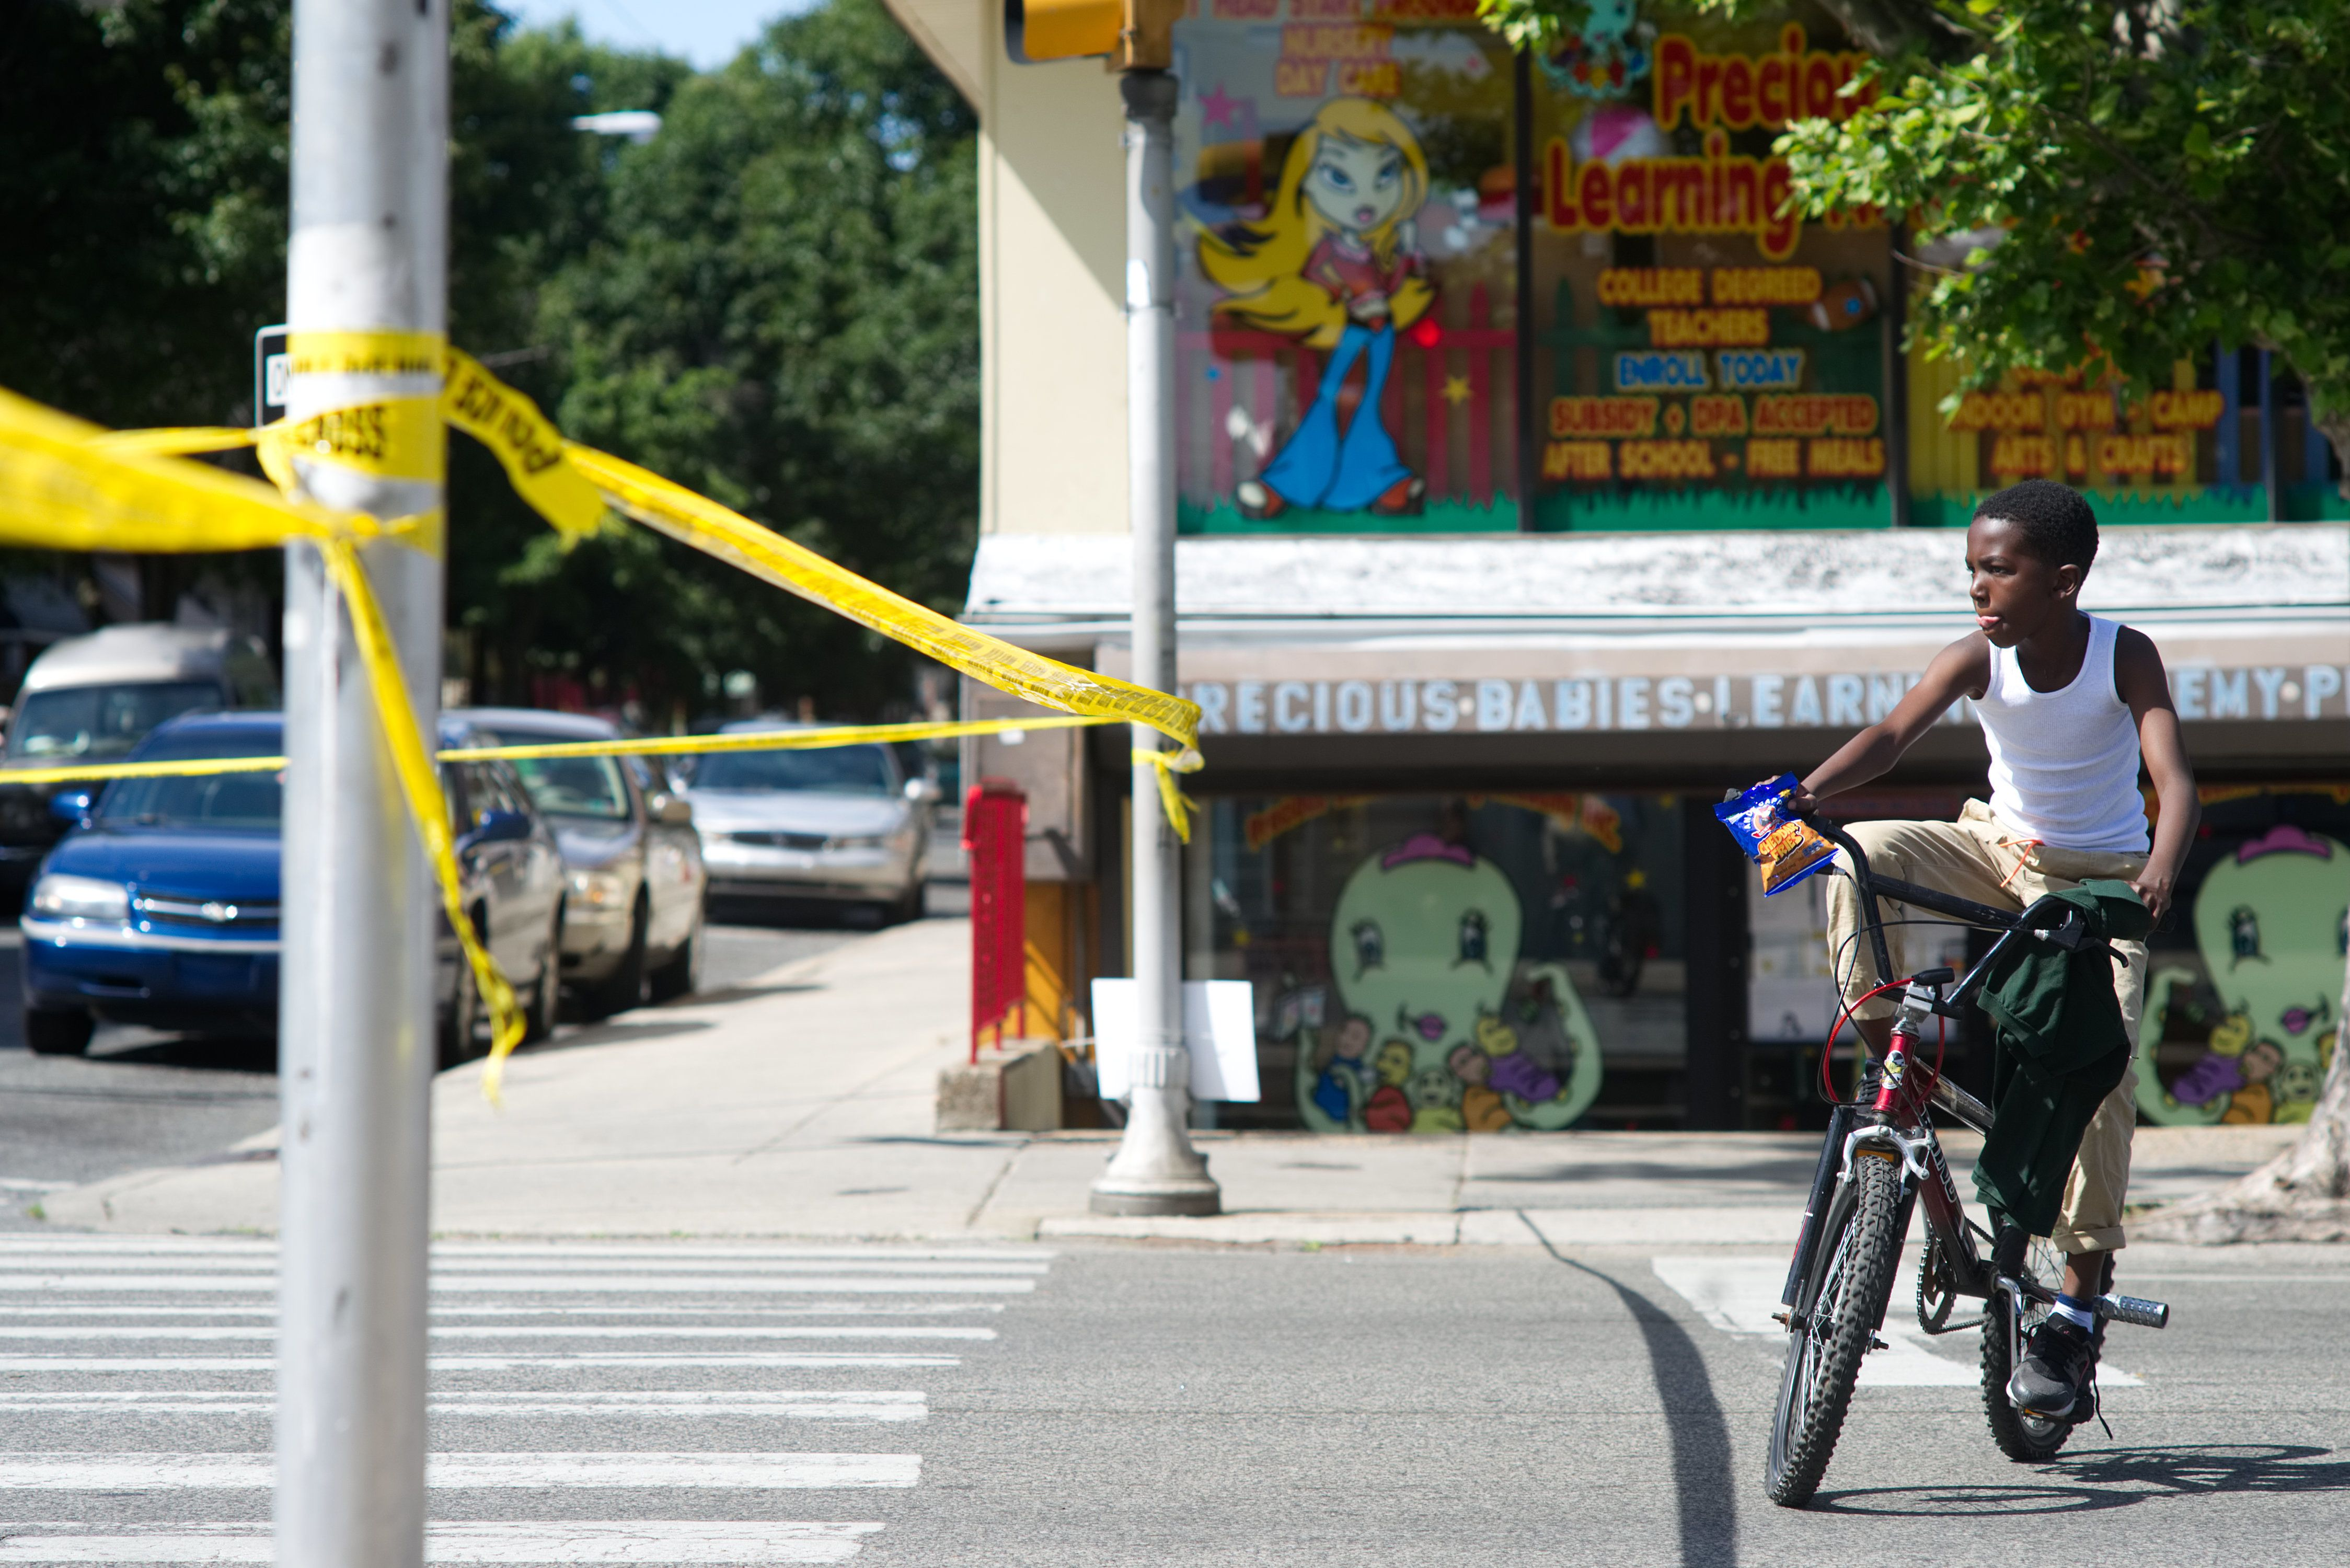 An African-American boy circles on a BMX bike near the site of a crime investigation after a shooting, in North Philadelphia, PA, on June 10, 2016. Teenagers on stunt bikes are described as 'Wheelie Kids' and are a growing subcultural phenomenon, often appearing in a flash mob style at or near large protest gatherings in Philadelphia. (Photo by Bastiaan Slabbers/NurPhoto via Getty Images)